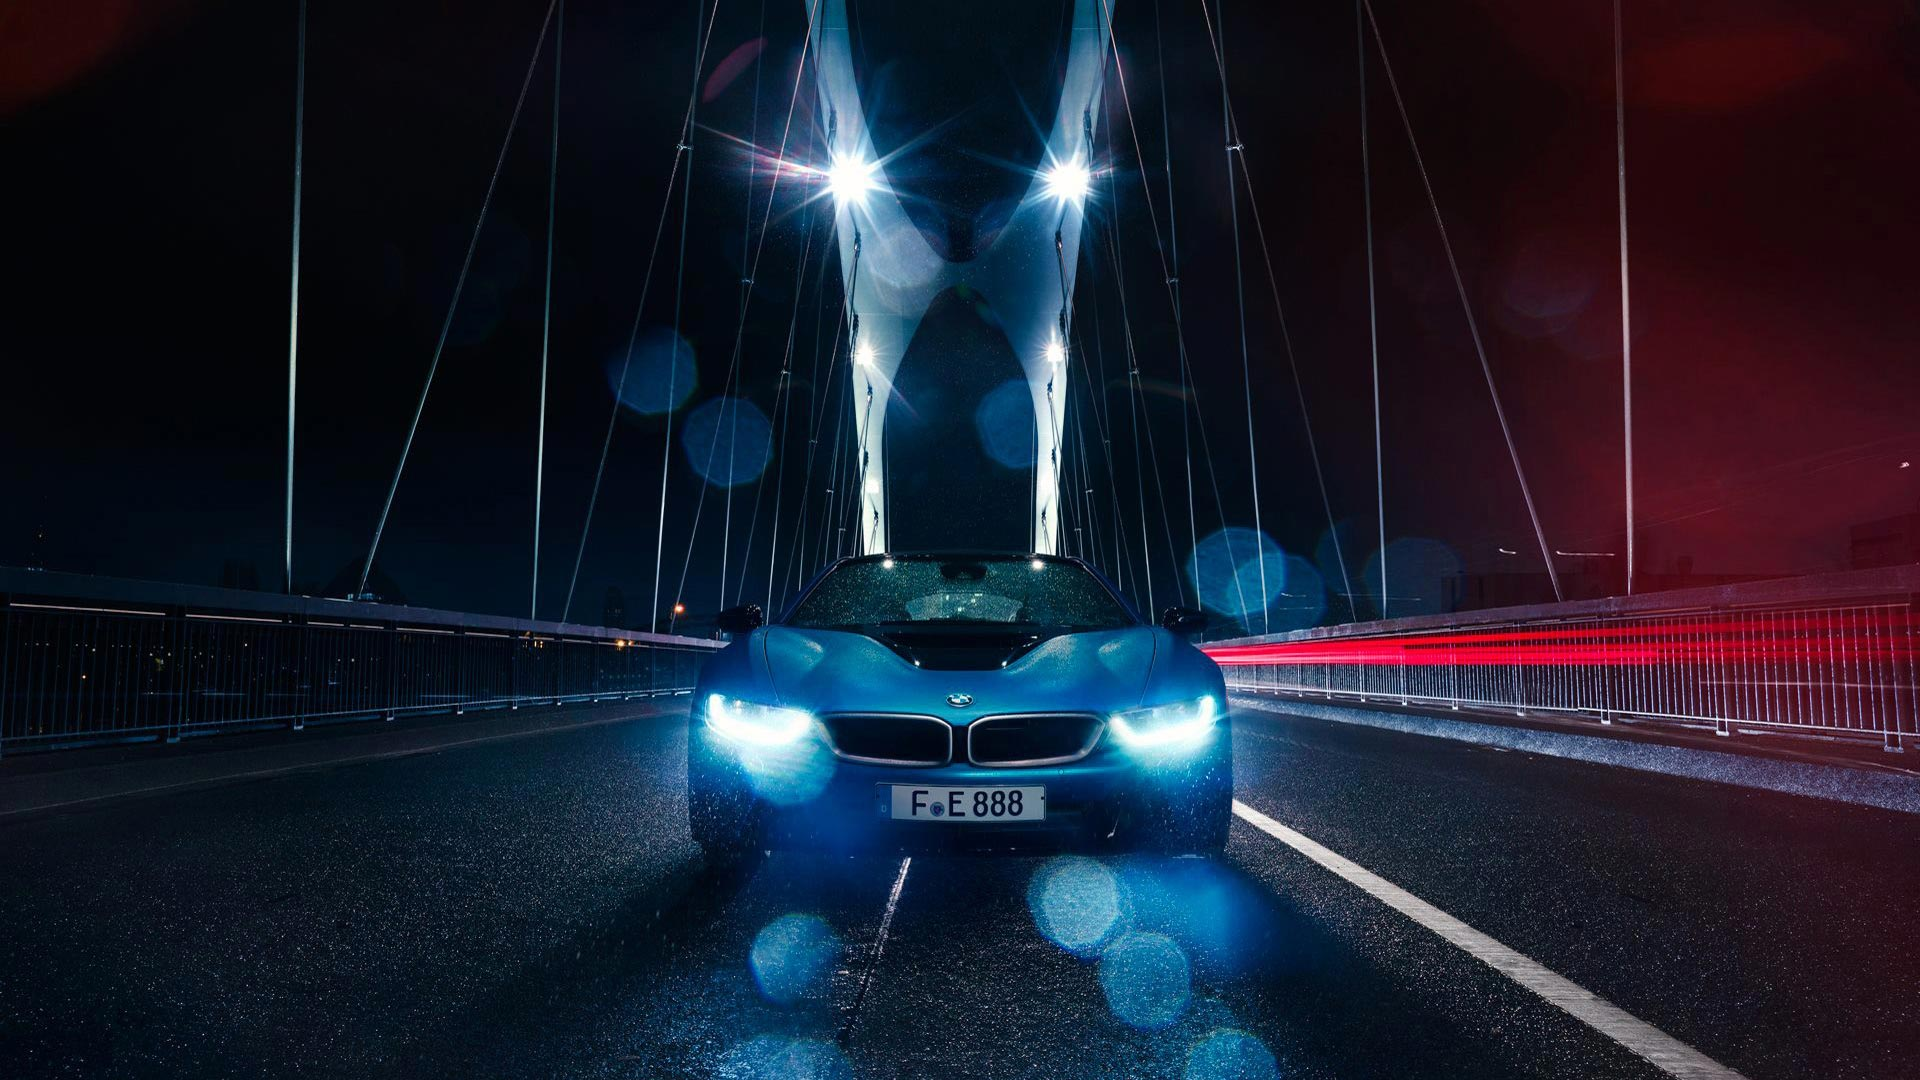 Exotic Hd Car Wallpapers Bmw I8 Theme For Windows 10 8 7